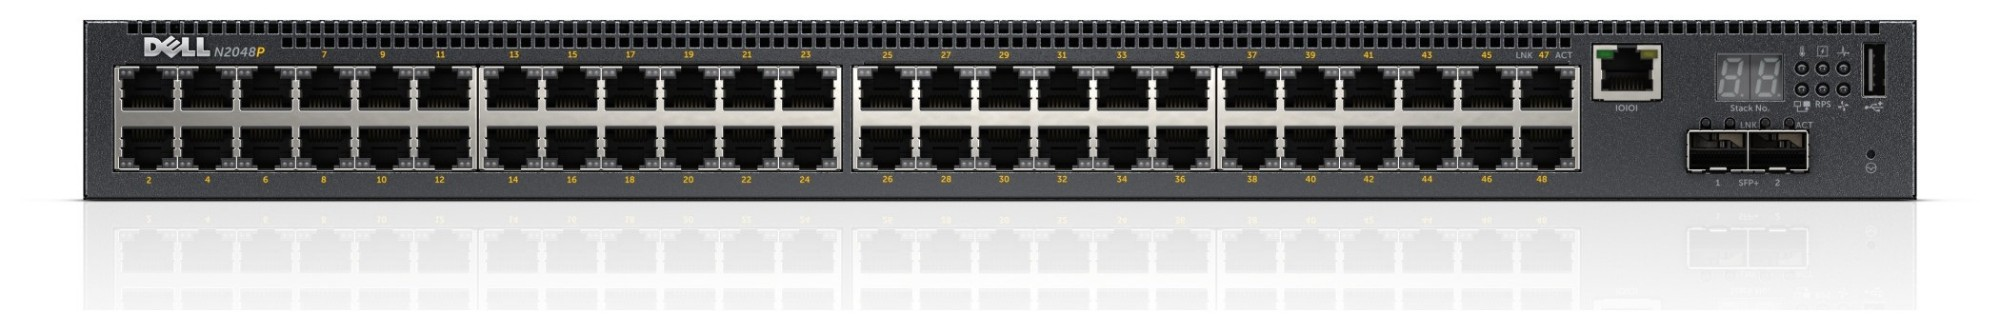 DELL PowerConnect N2048P Managed network switch L2+ Gigabit Ethernet (10/100/1000) Power over Ethernet (PoE) 1U Black